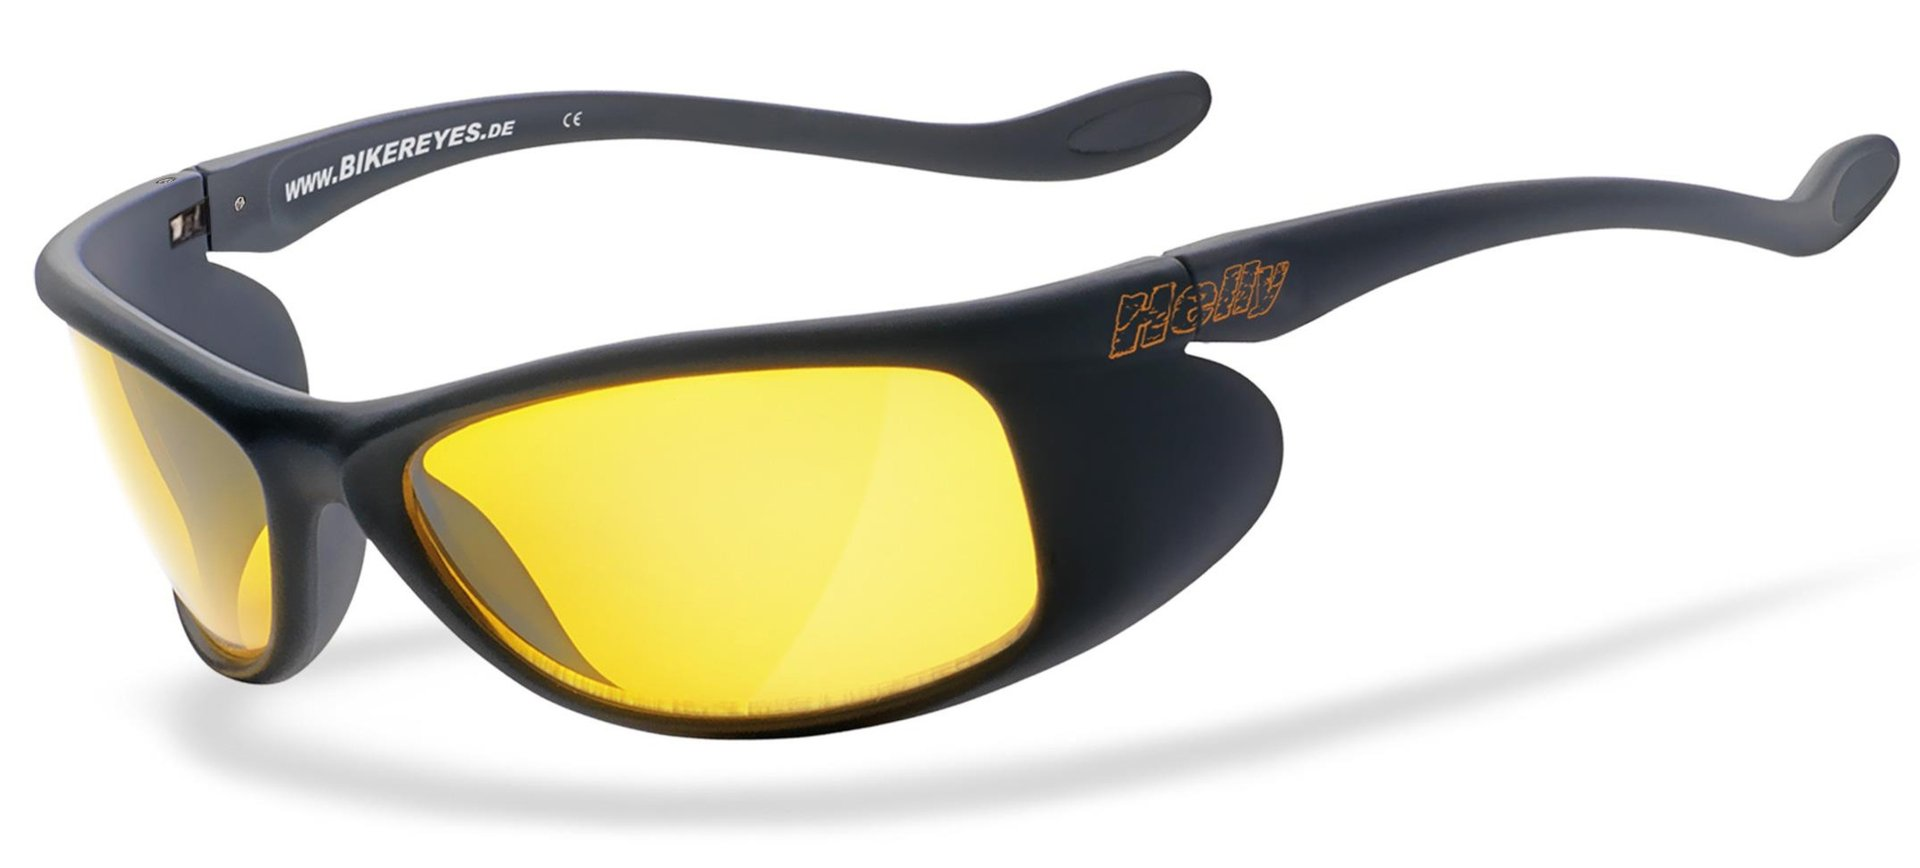 Helly Bikereyes Top Speed 4 Sonnenbrille, gelb, gelb